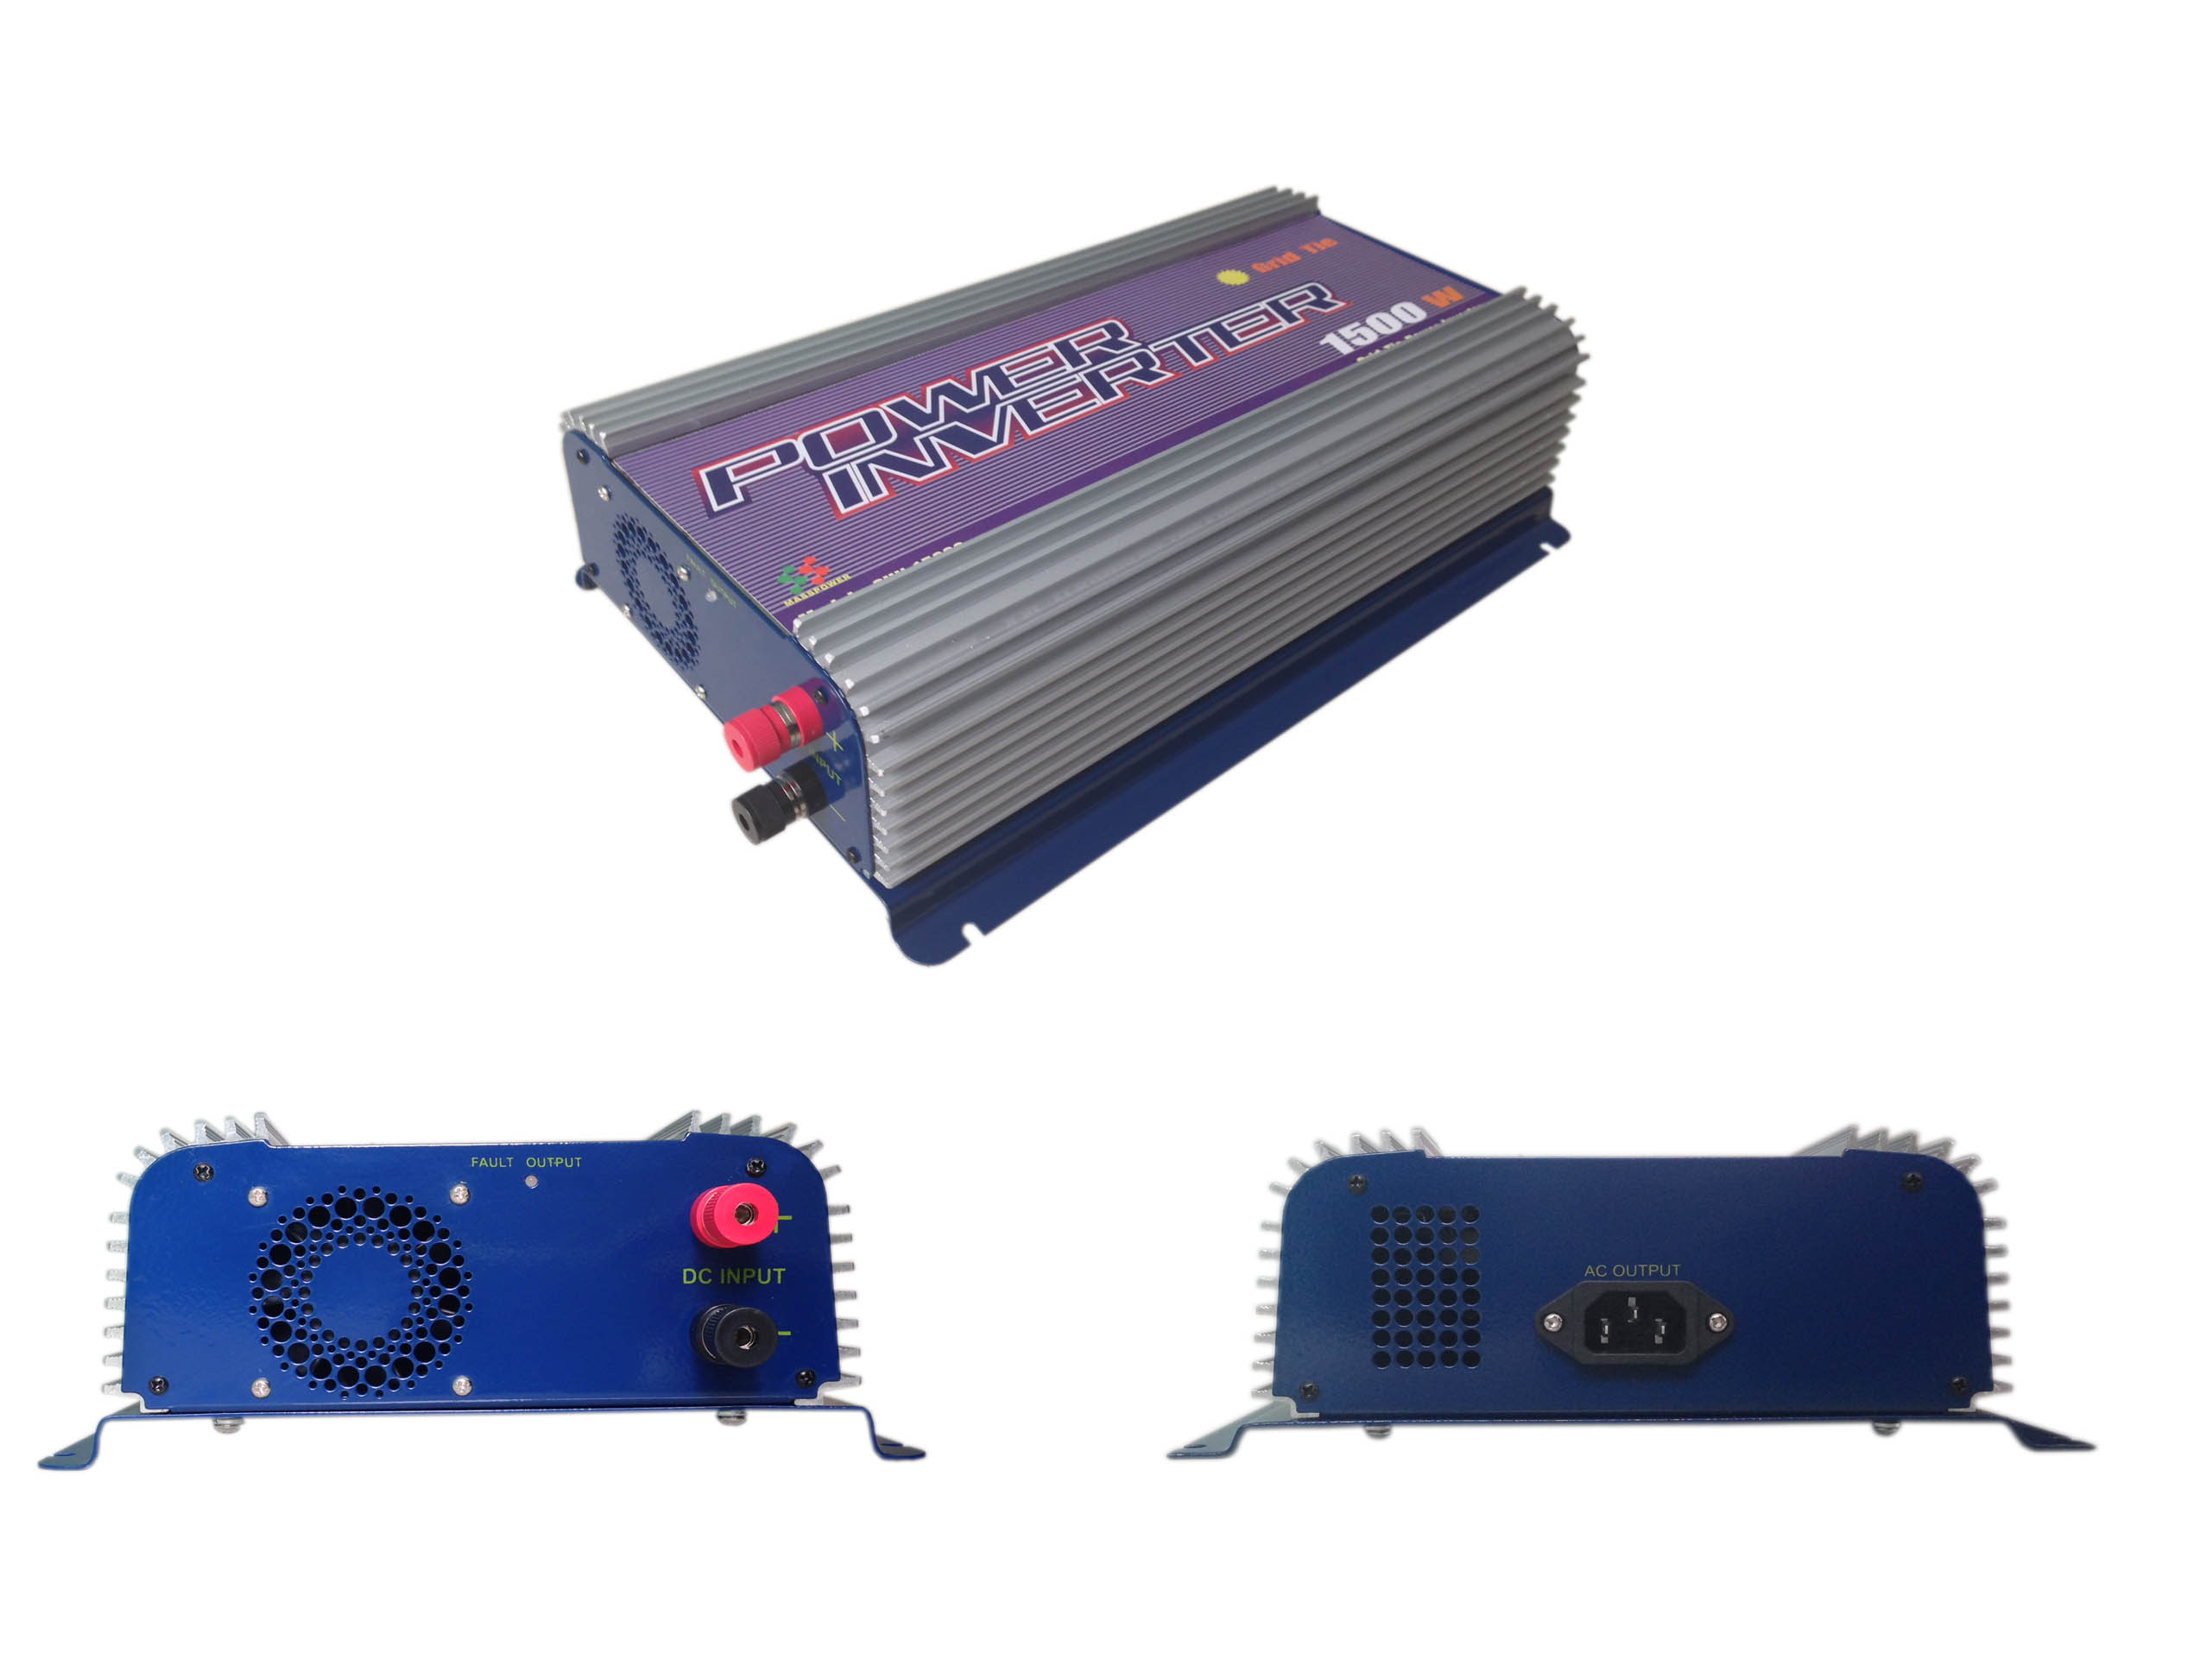 SUN-1500G Solar Grid Tie Inverter/1500w Grid Connected Inverter